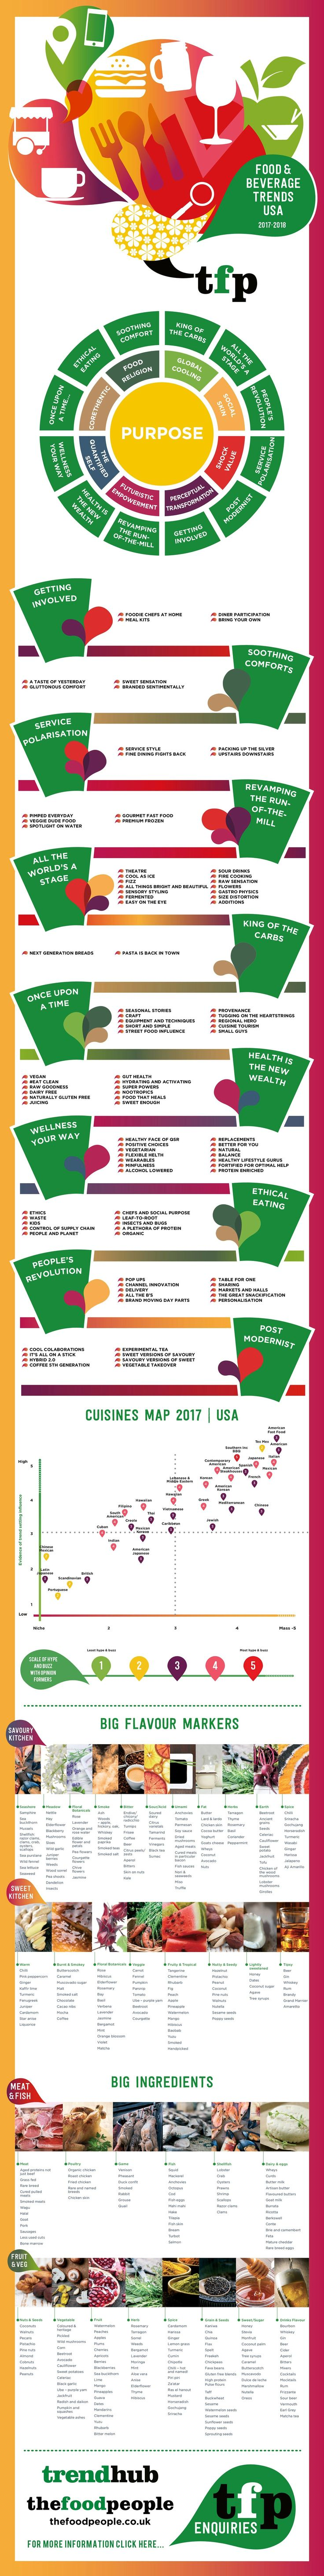 Infographic of Food and Beverage Trends 2017 - USA  We can't wait for you to see all of the trendy specials we have set for your cafes this year. We're just getting started!